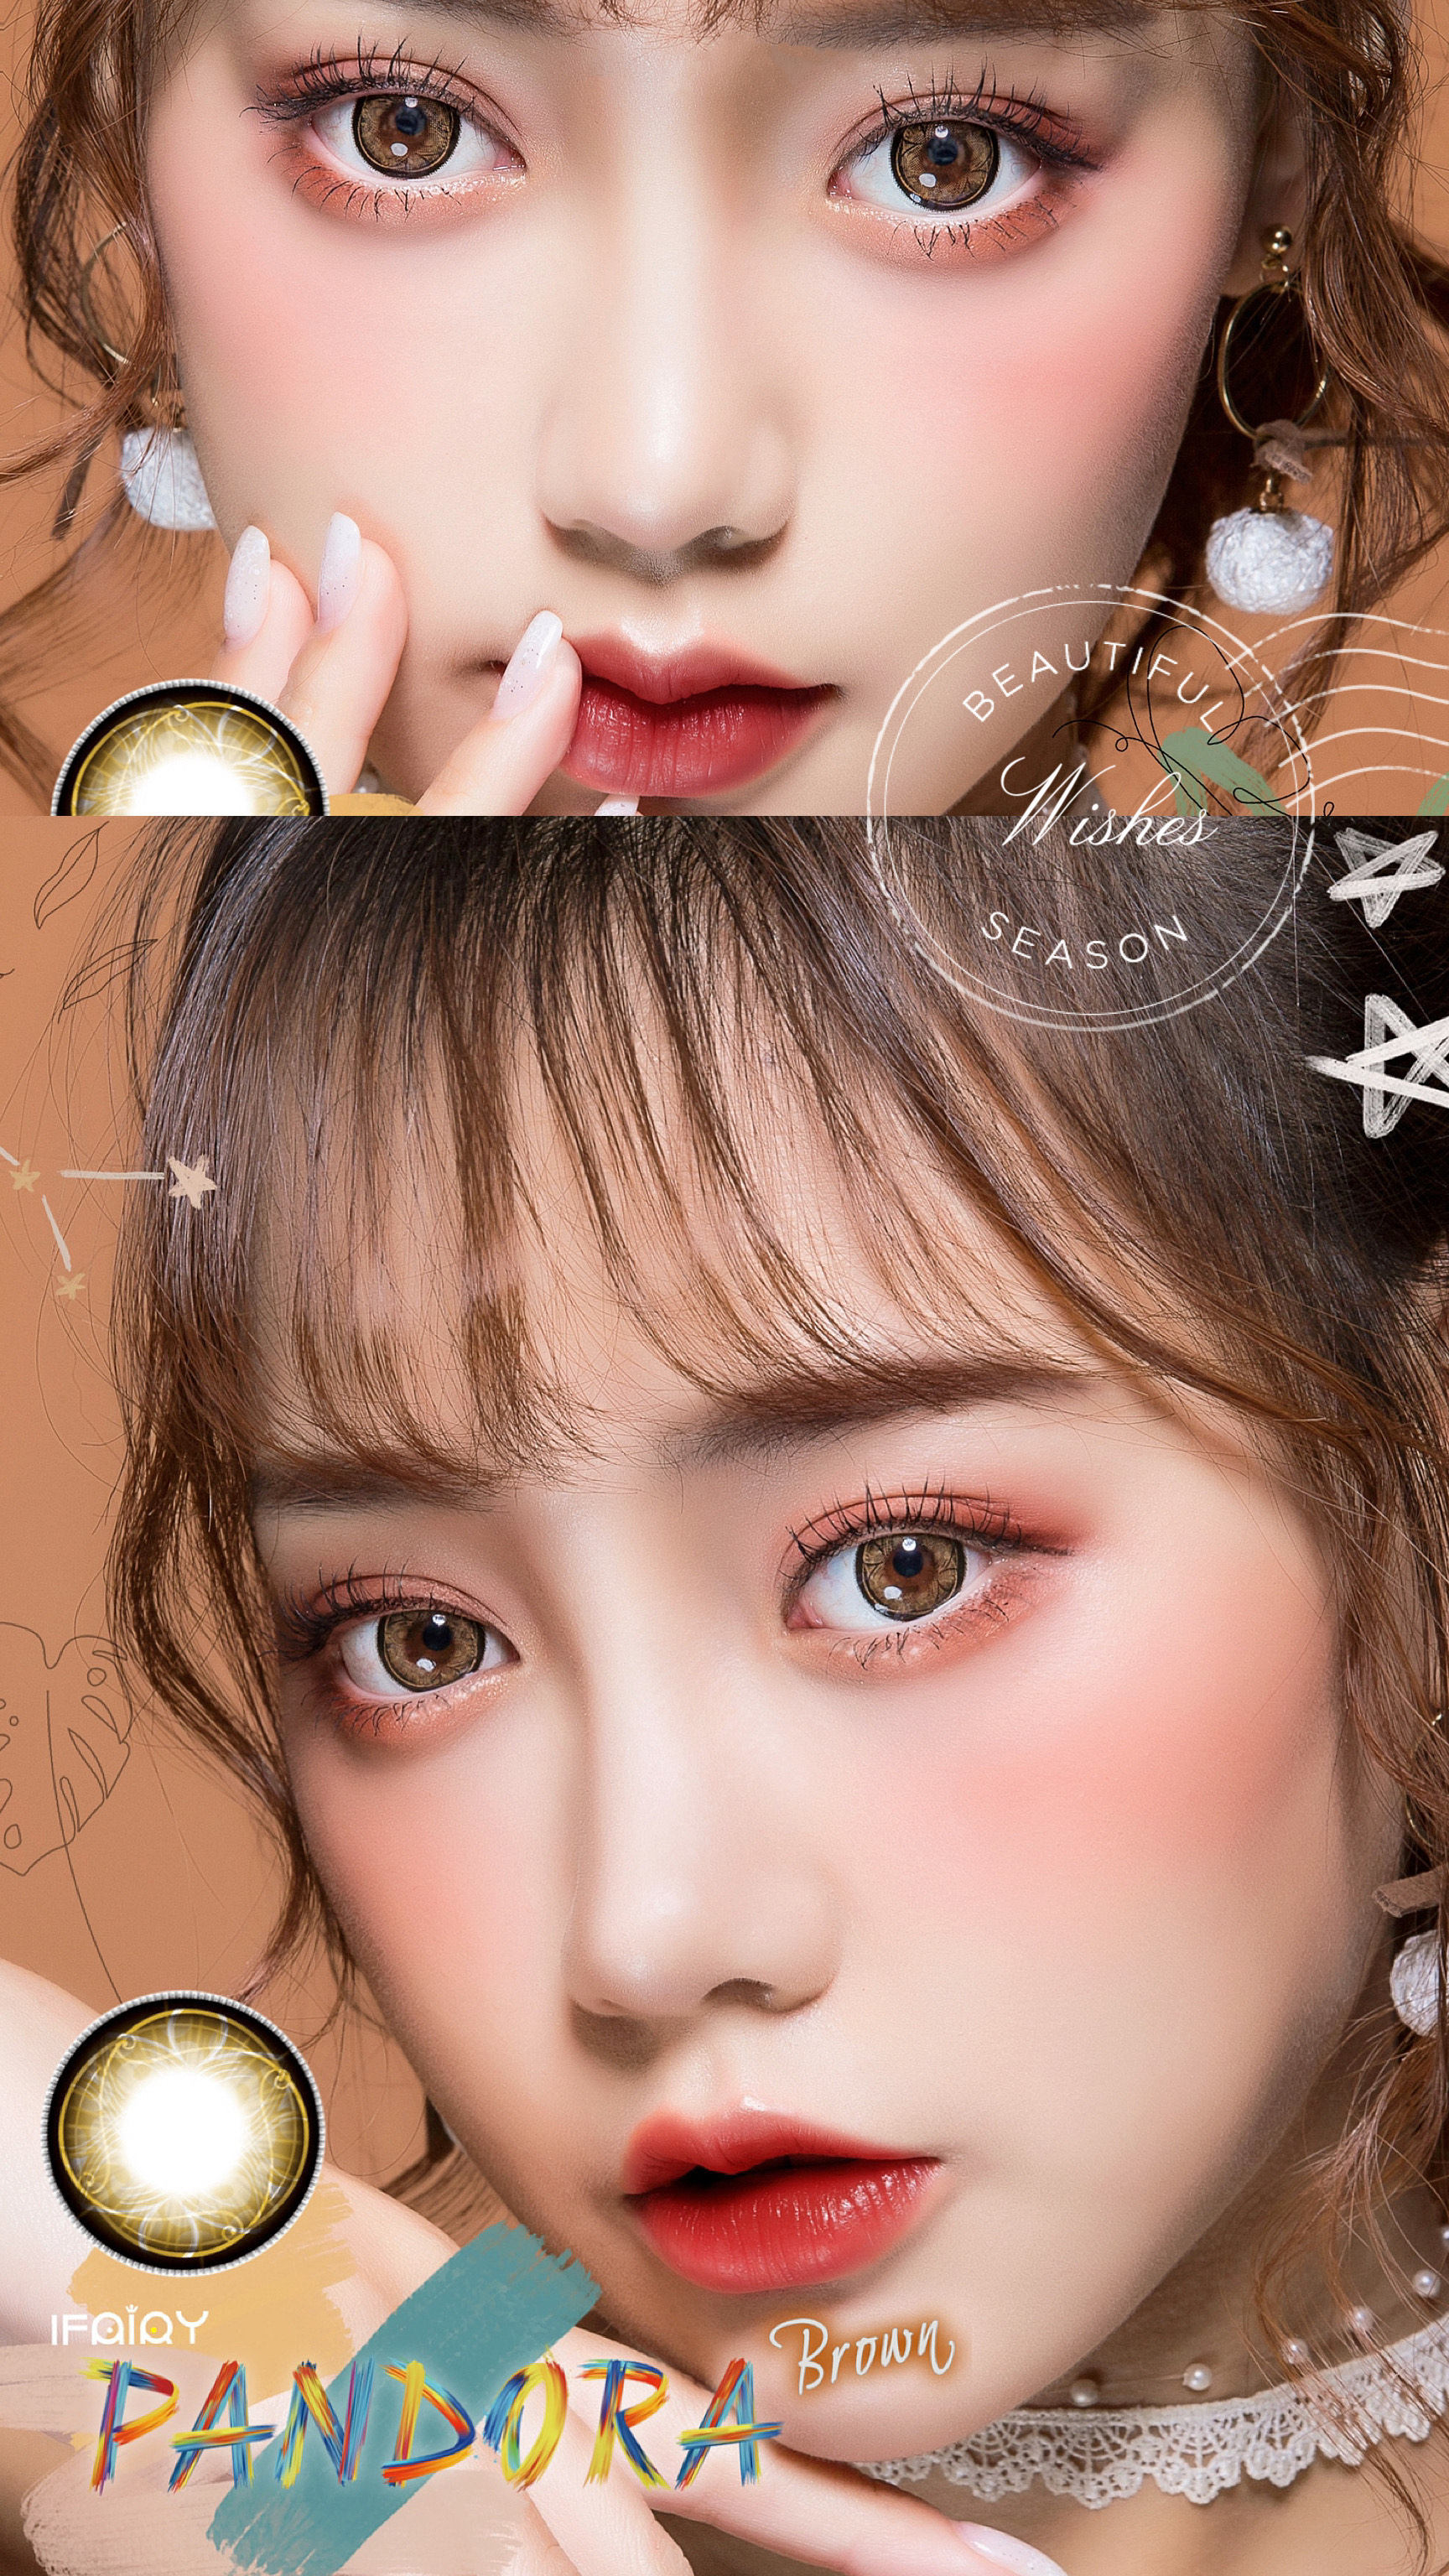 i.fairy pandora , ifairy pandora brown, color contact lens, ifairy destiny color contact lens, ttdeye, pinkyparadise, color contacts, big eye contact lens, korean color contacts, korean circle lenses